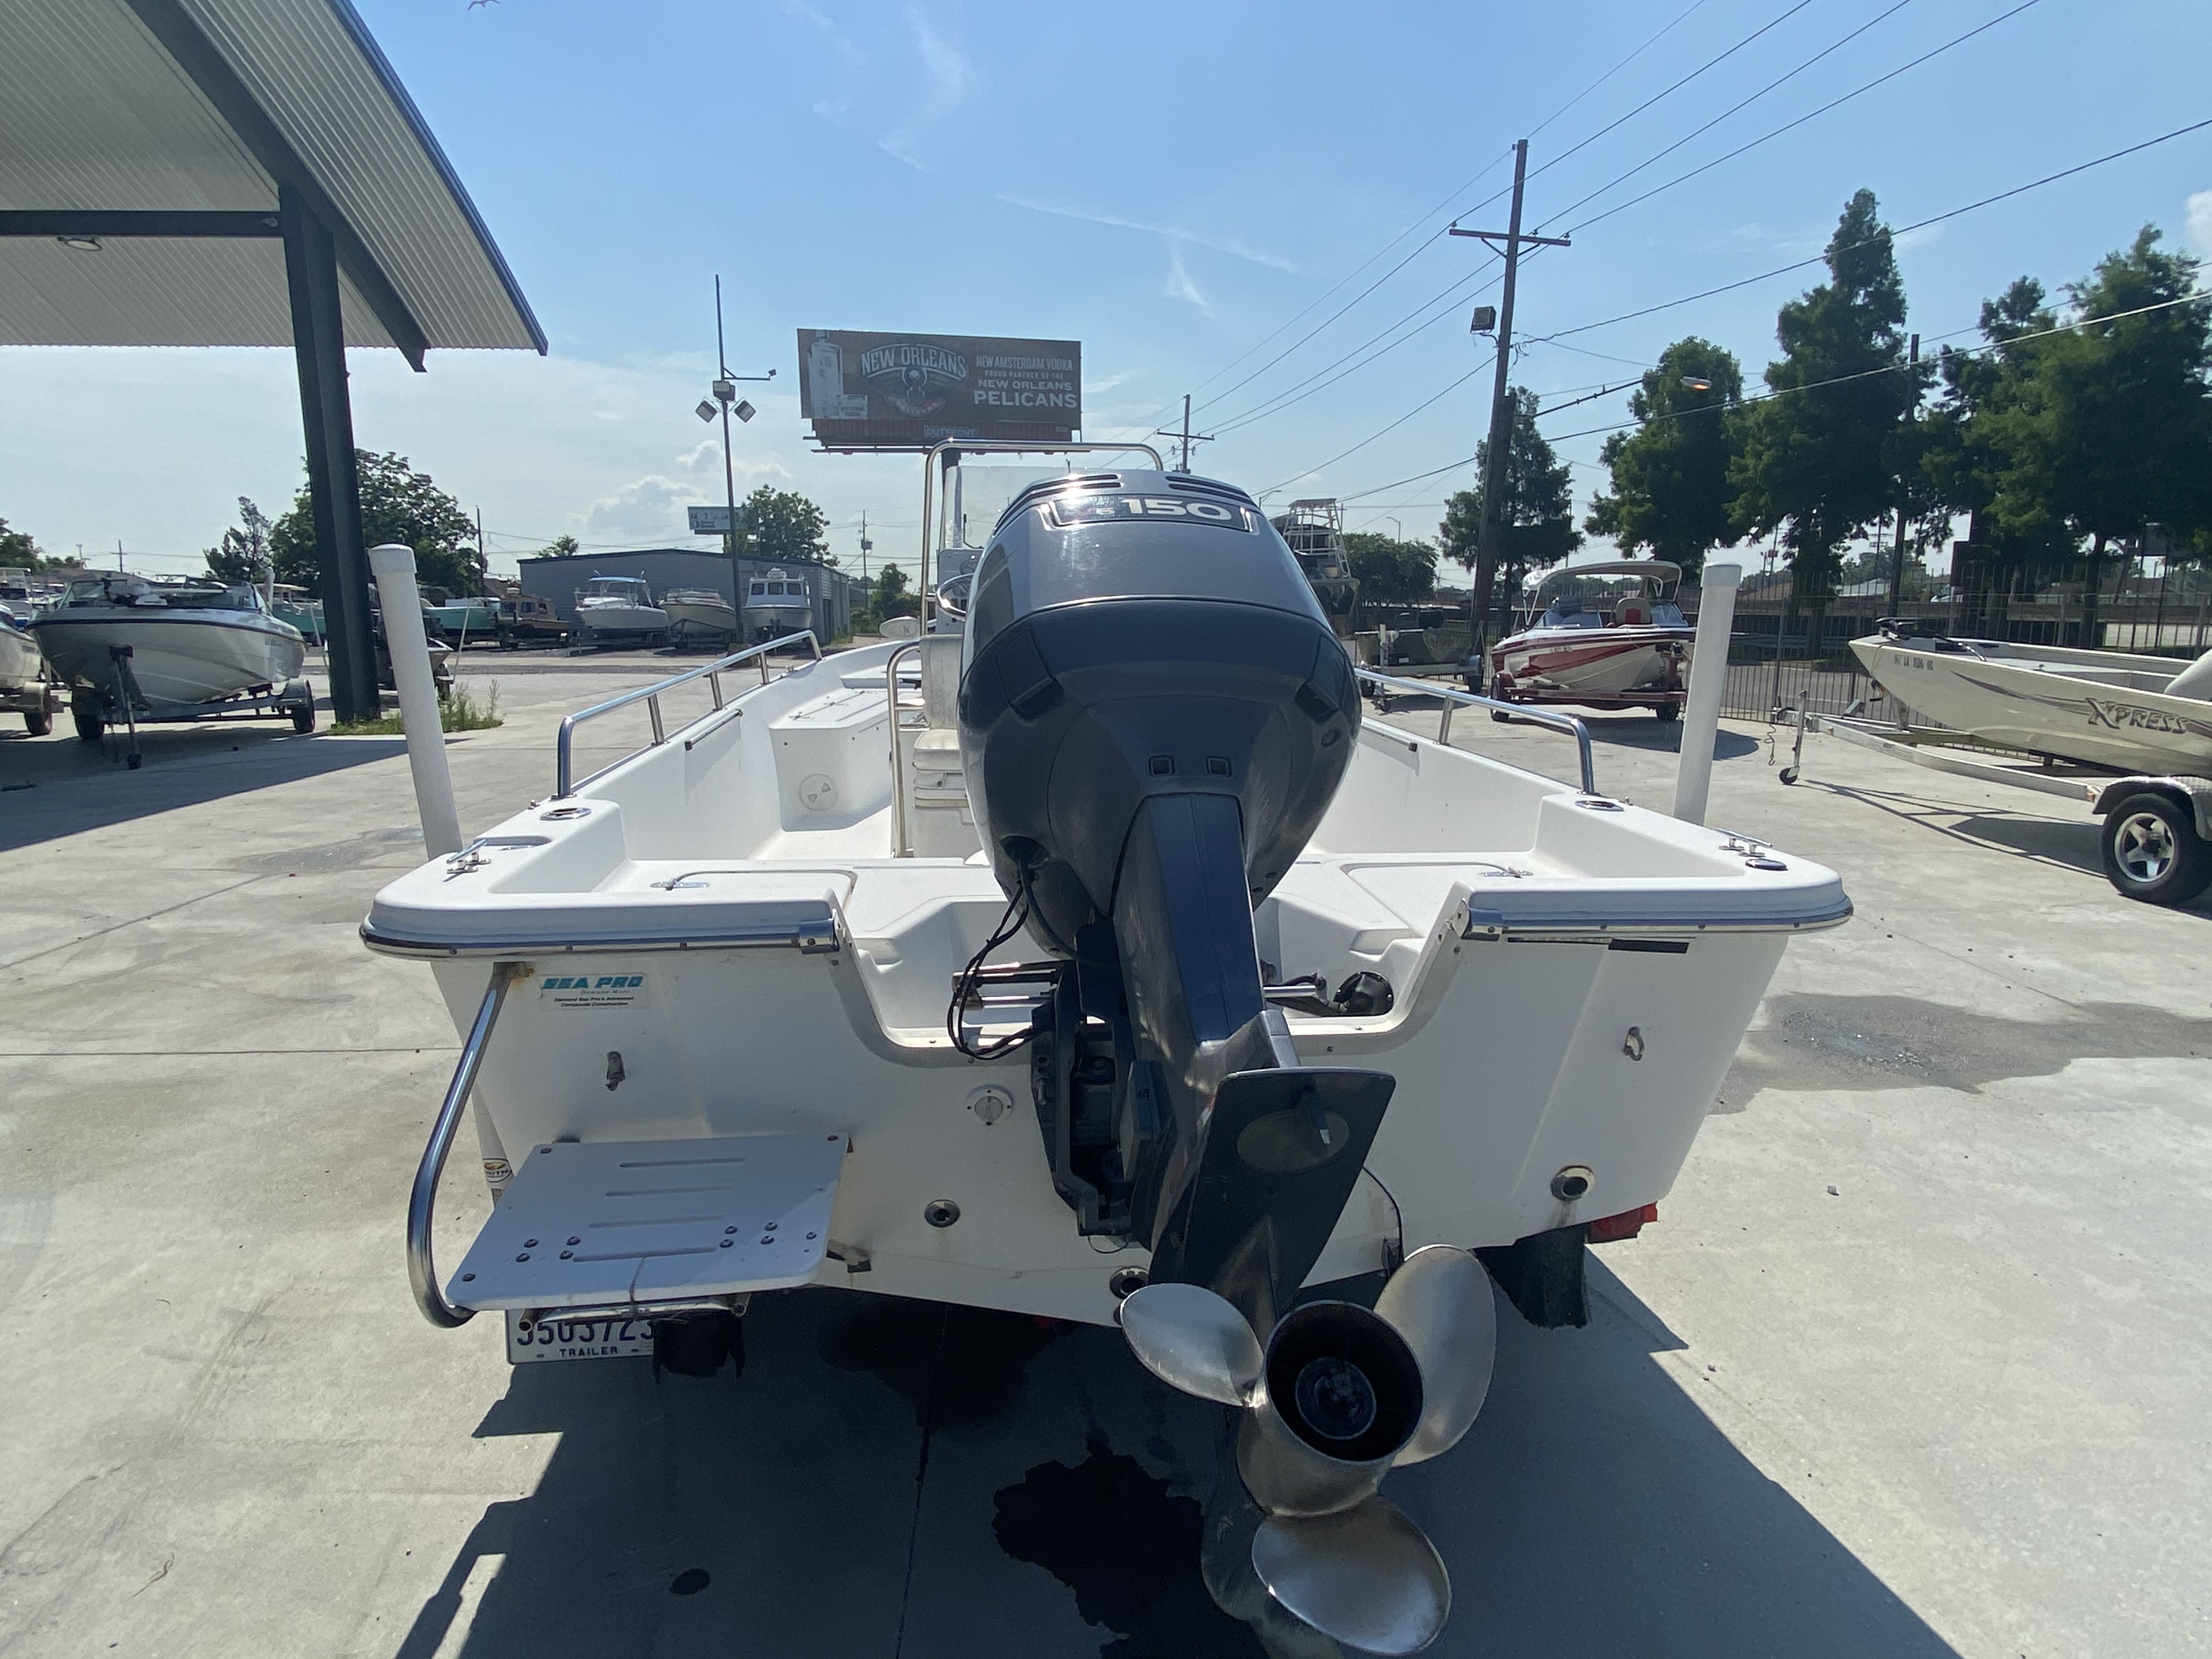 2003 Sea Pro boat for sale, model of the boat is SV2100 & Image # 12 of 12